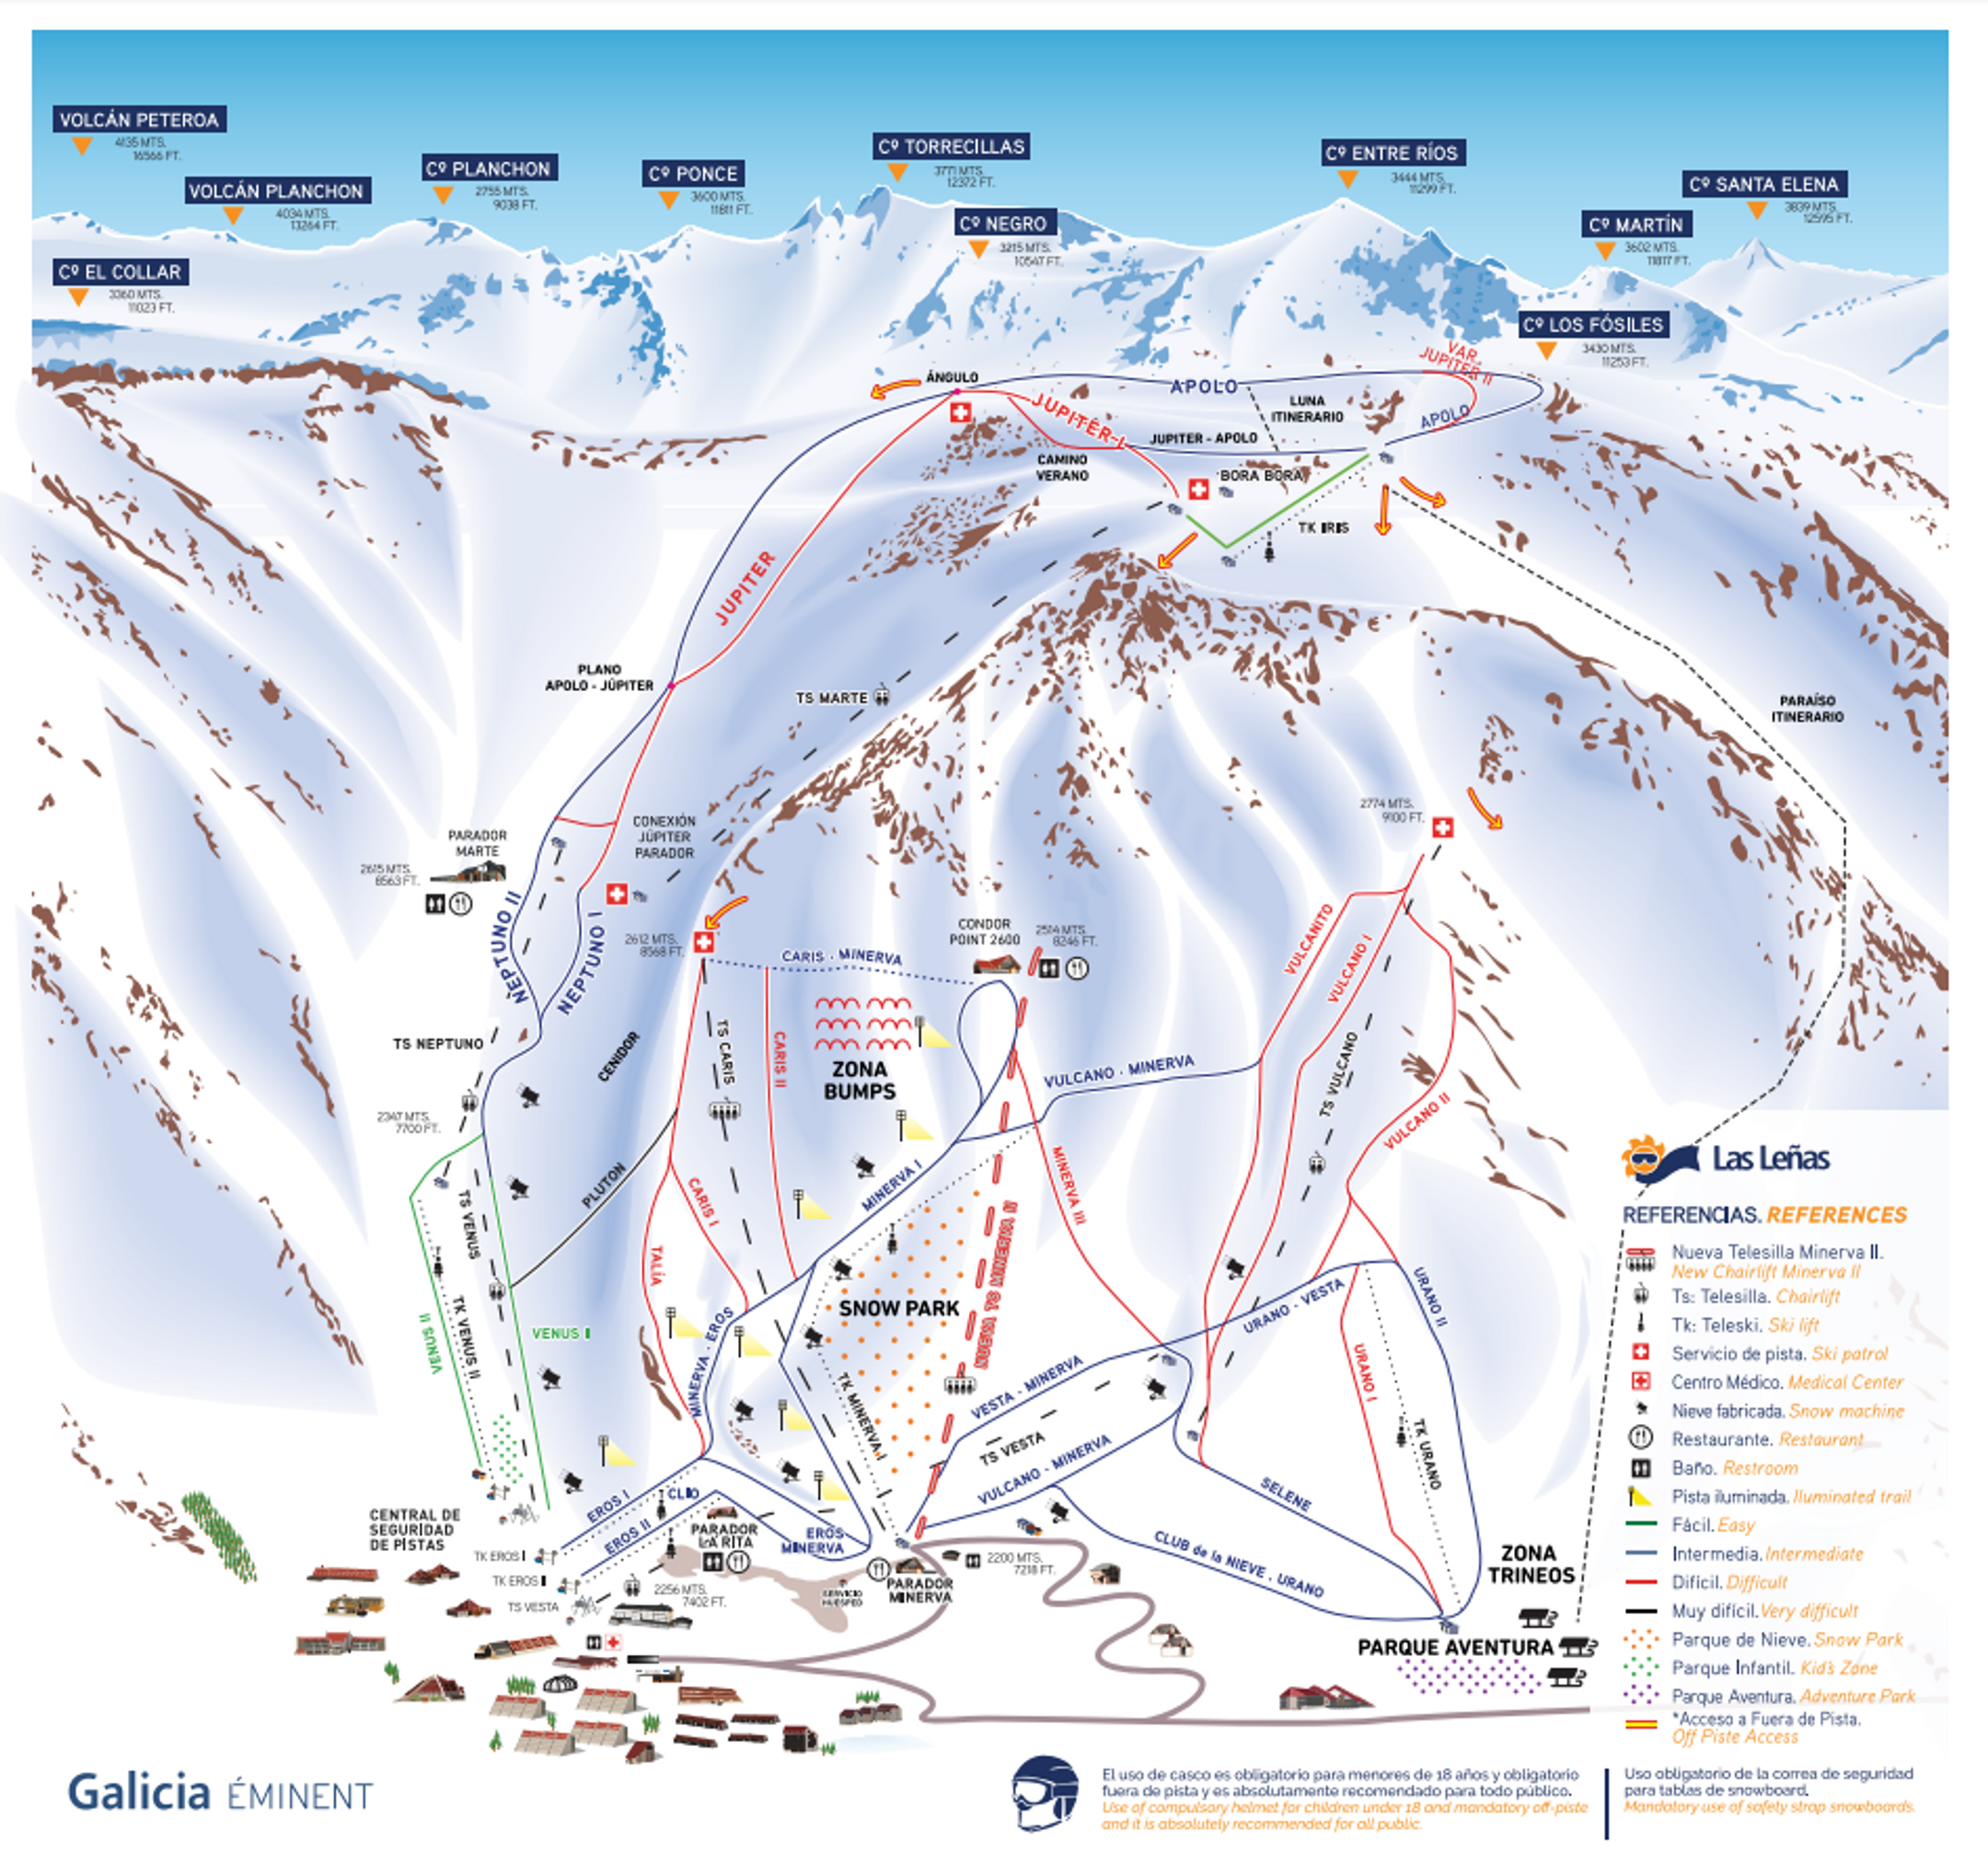 Las Lenas ski-resort-trail-map Argentina ripatrip